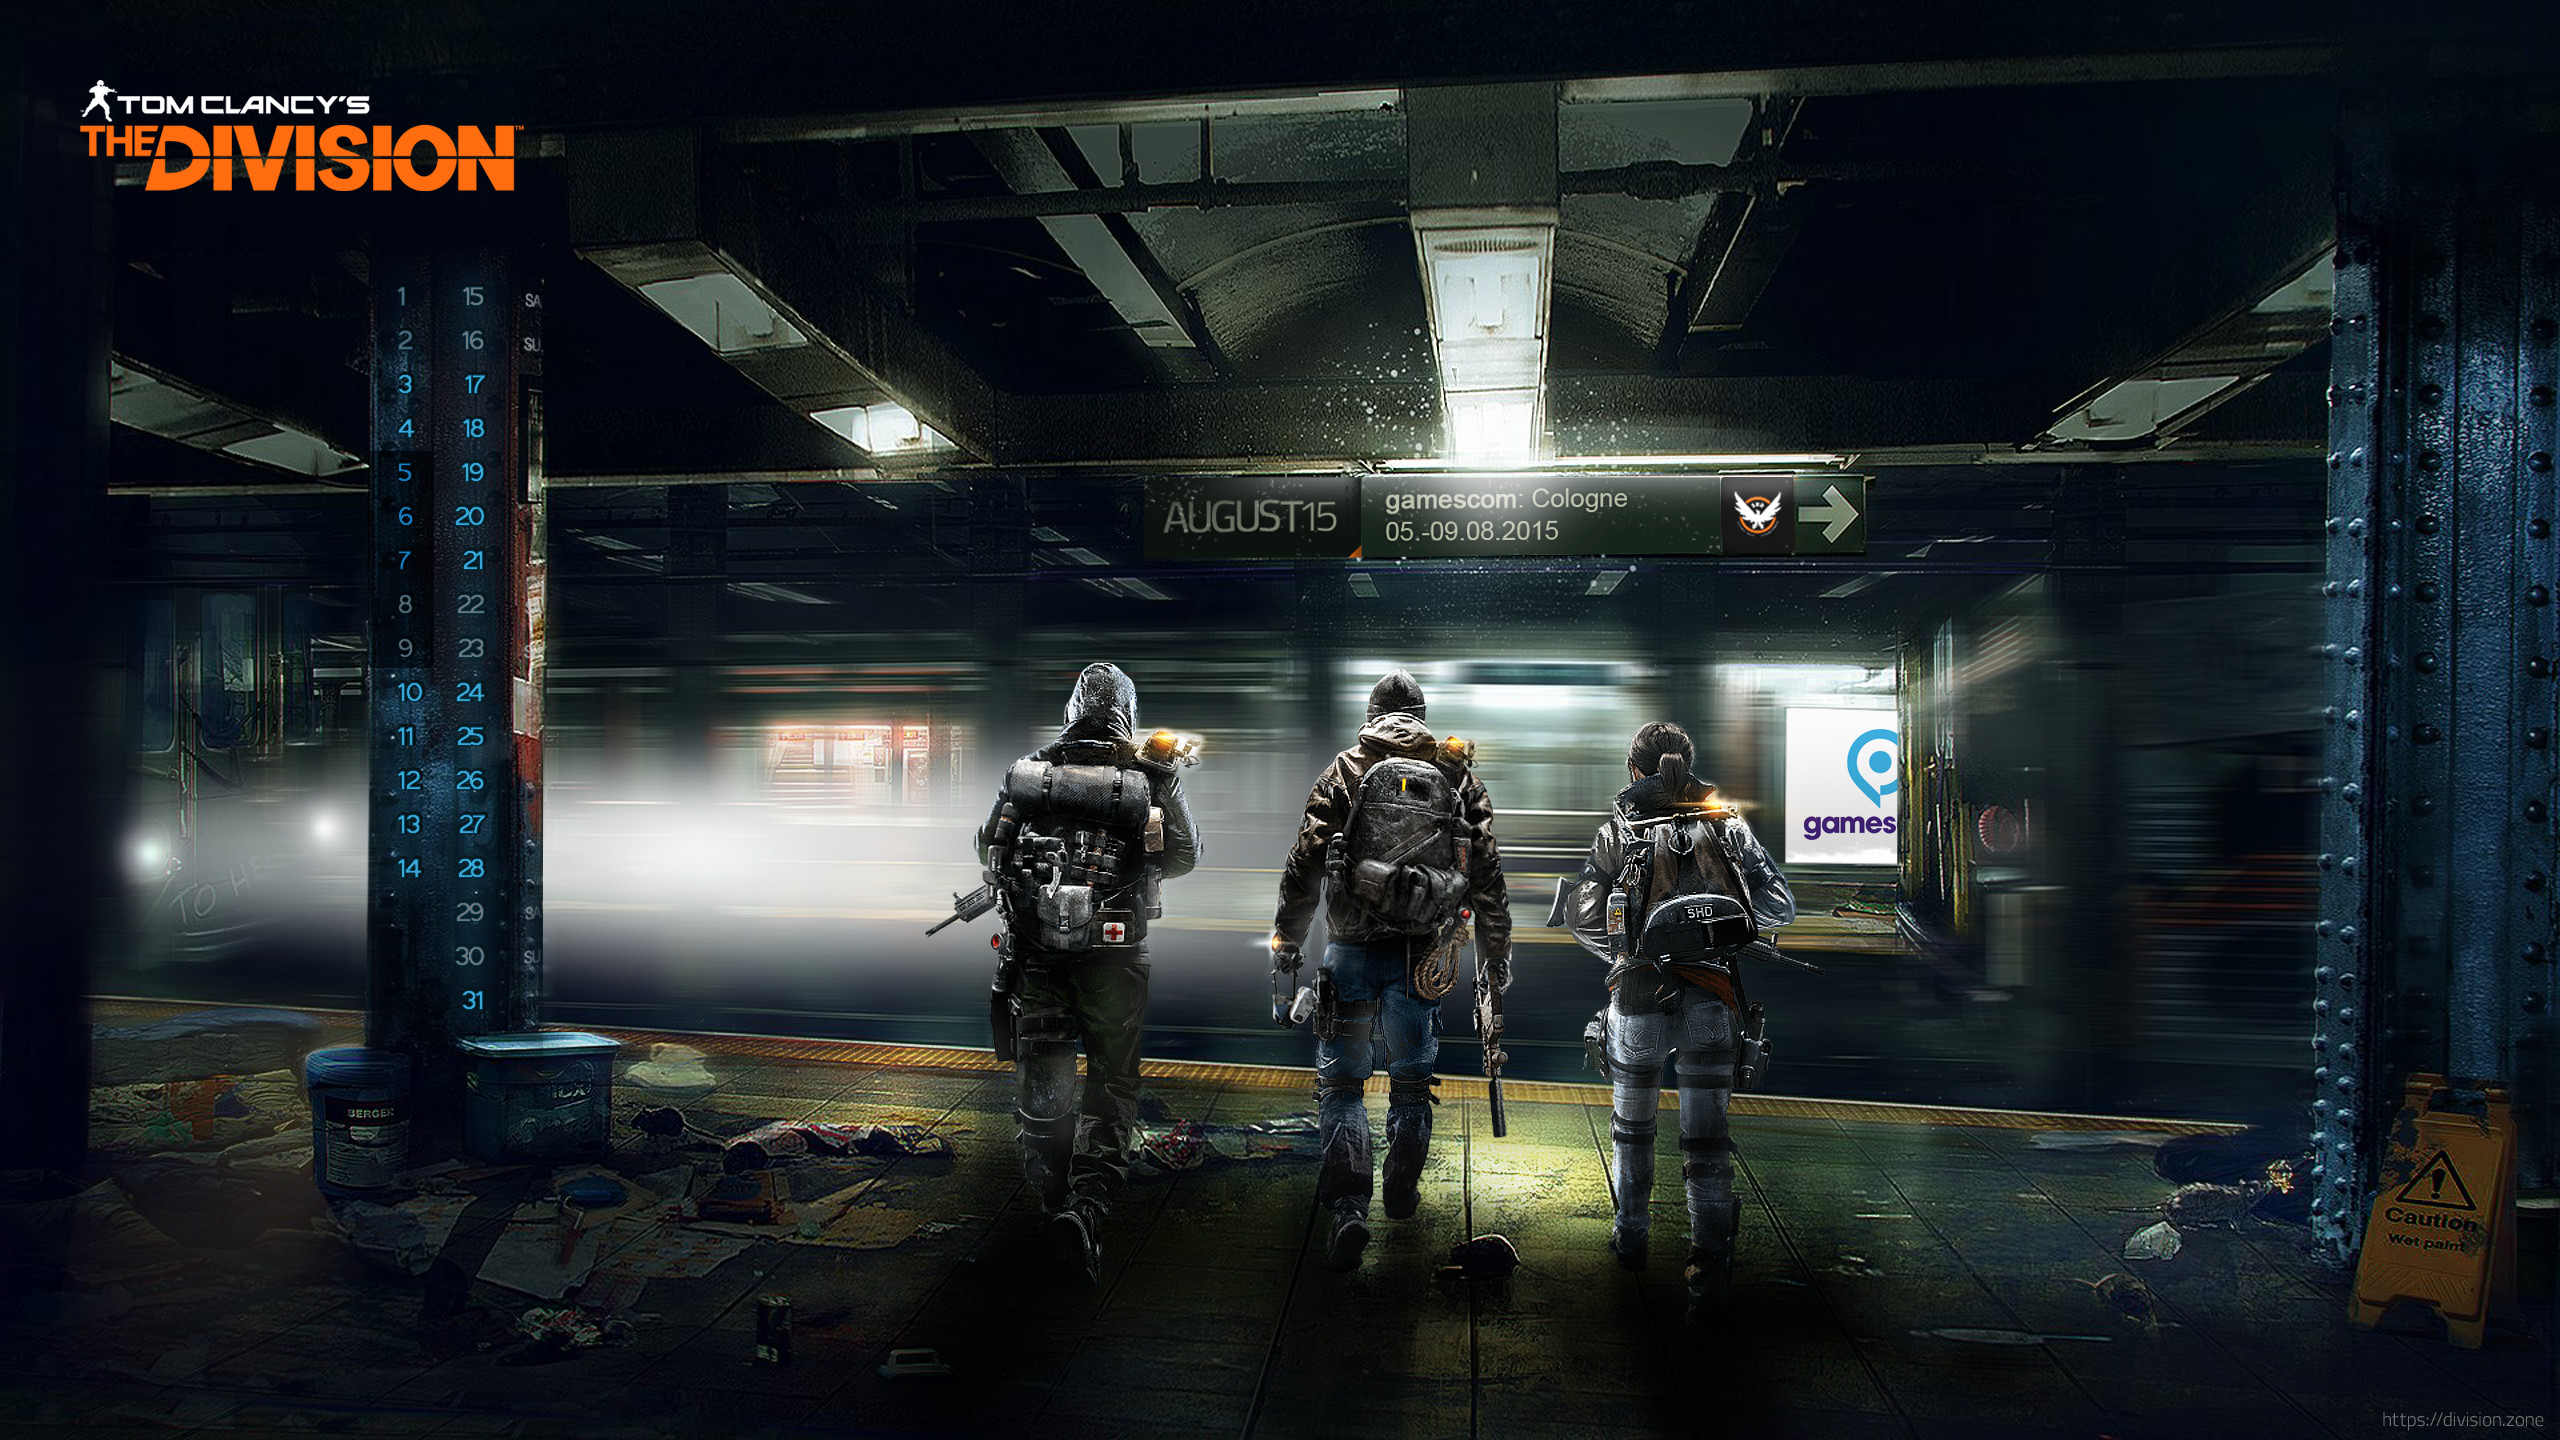 2560x1440 The Division Video Game Wallpaper 1080p